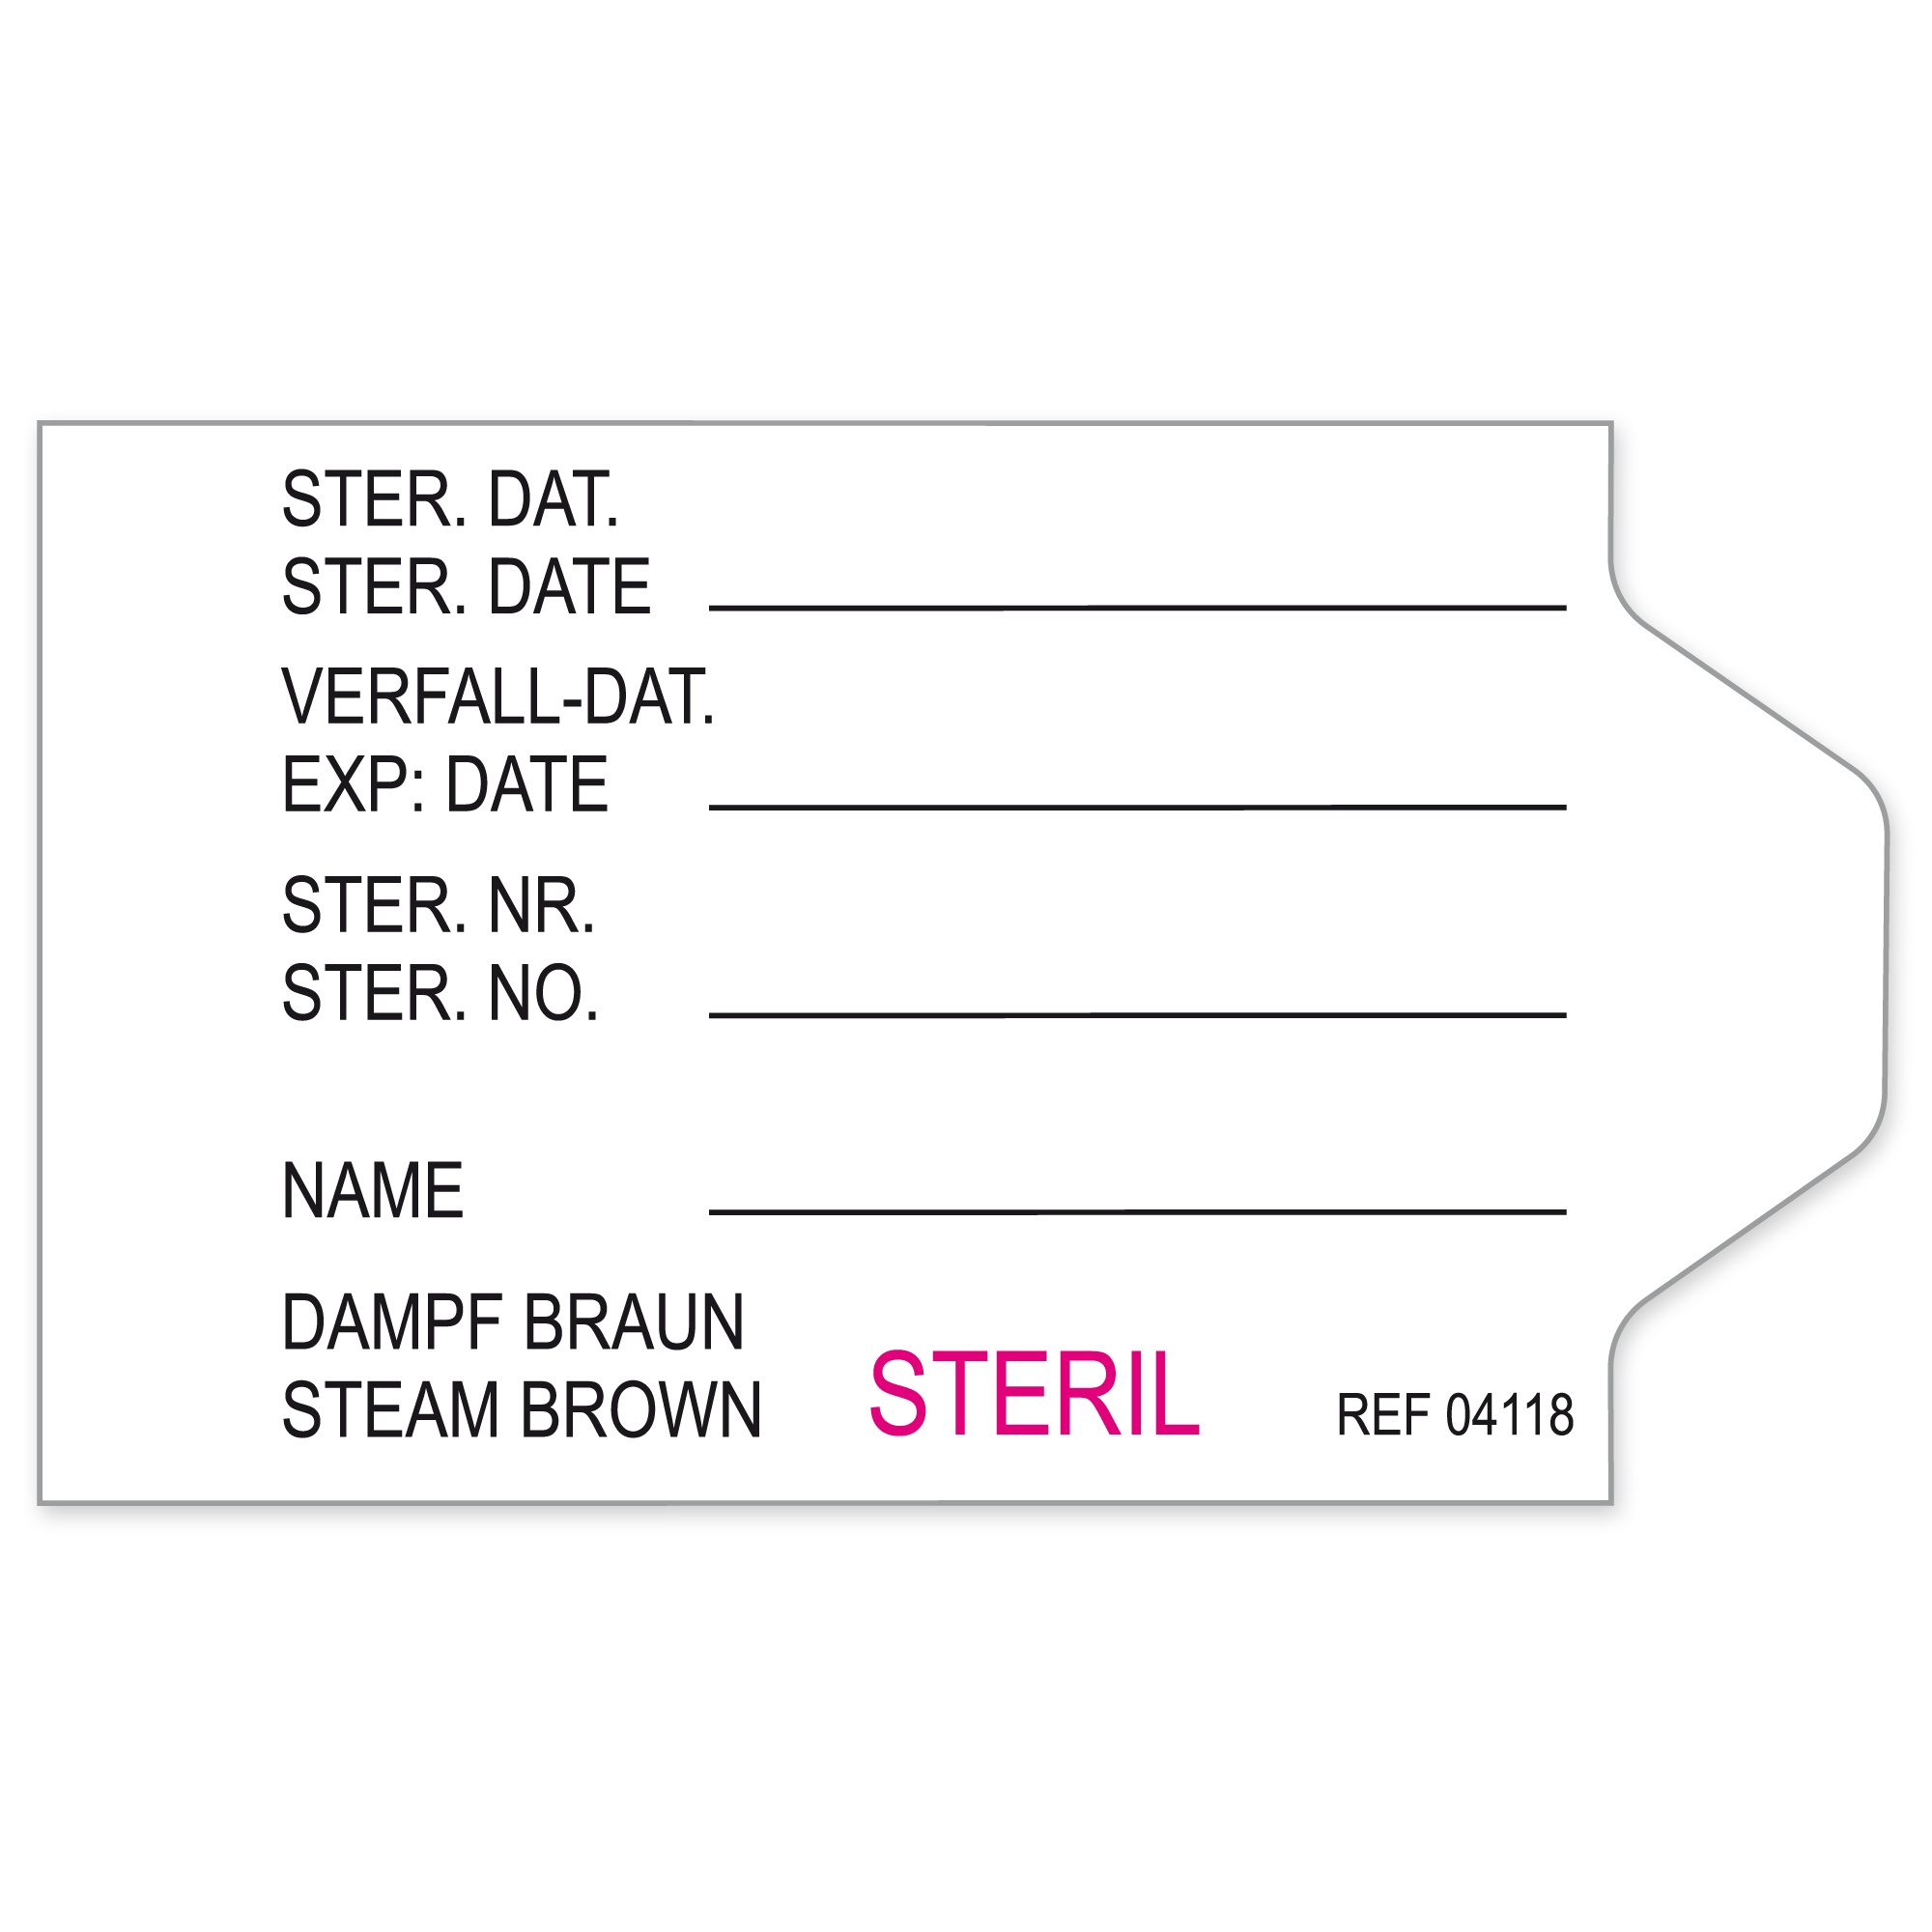 Container Labels for Aesculap Containers Image